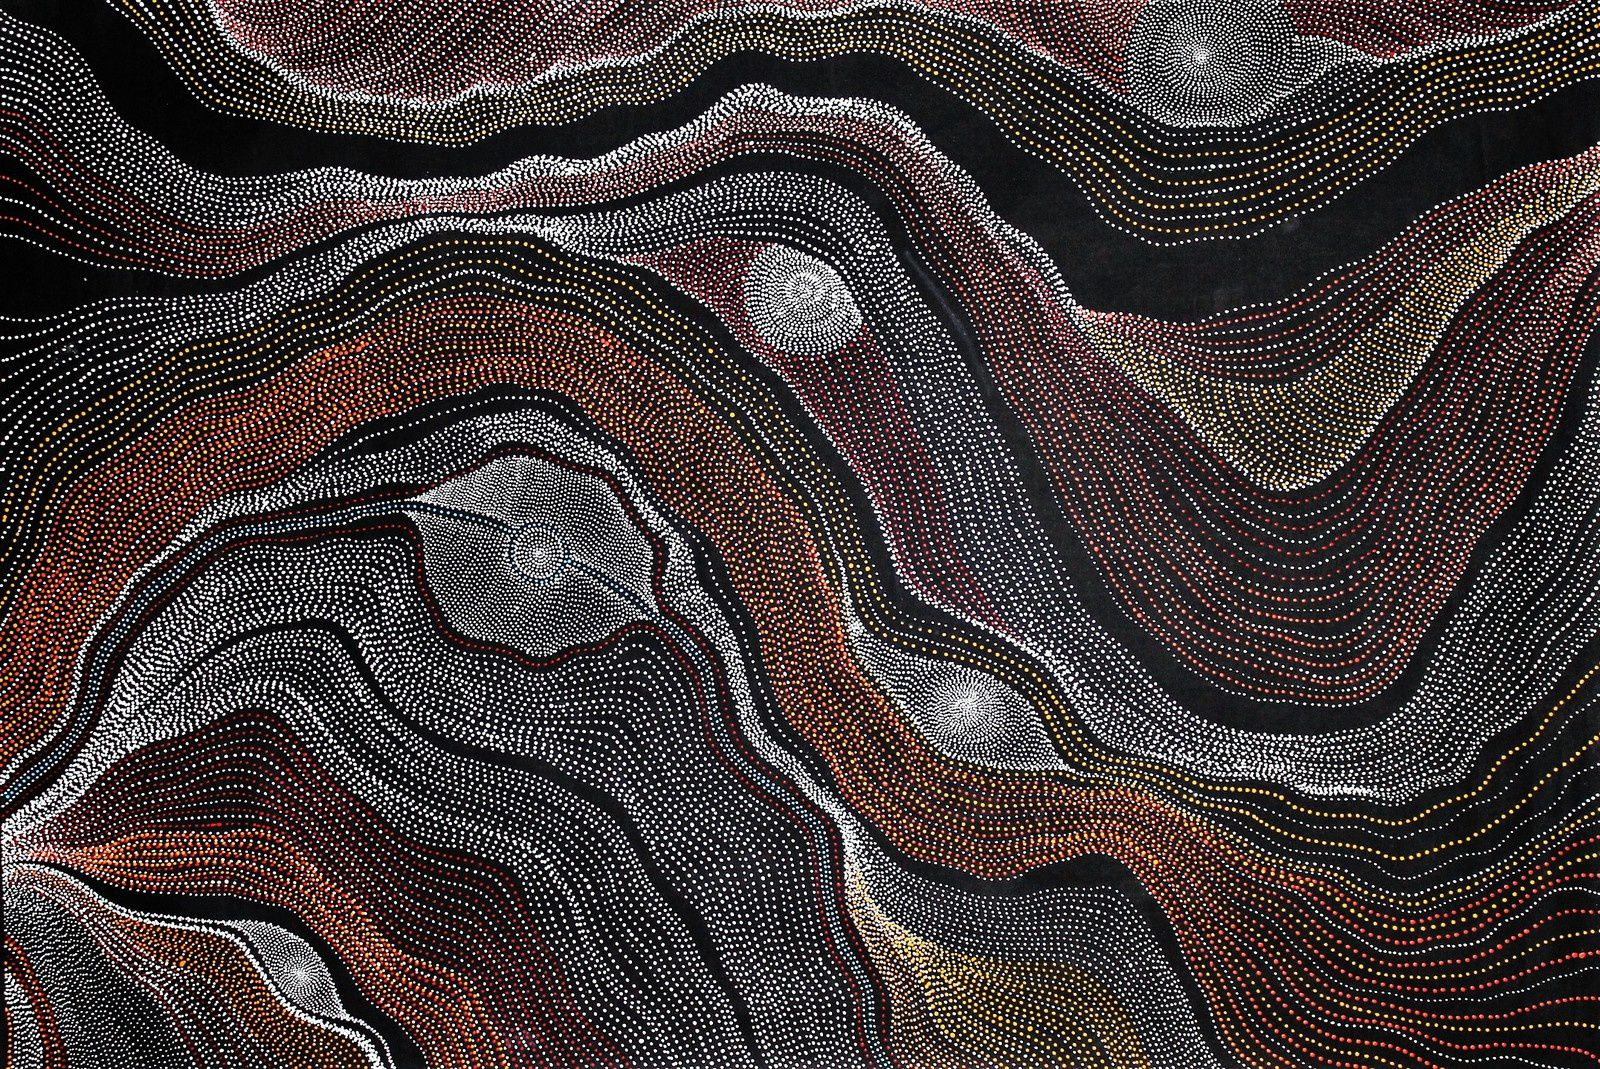 Anna Price Petyarre,  Ngurra (My country)		140x93